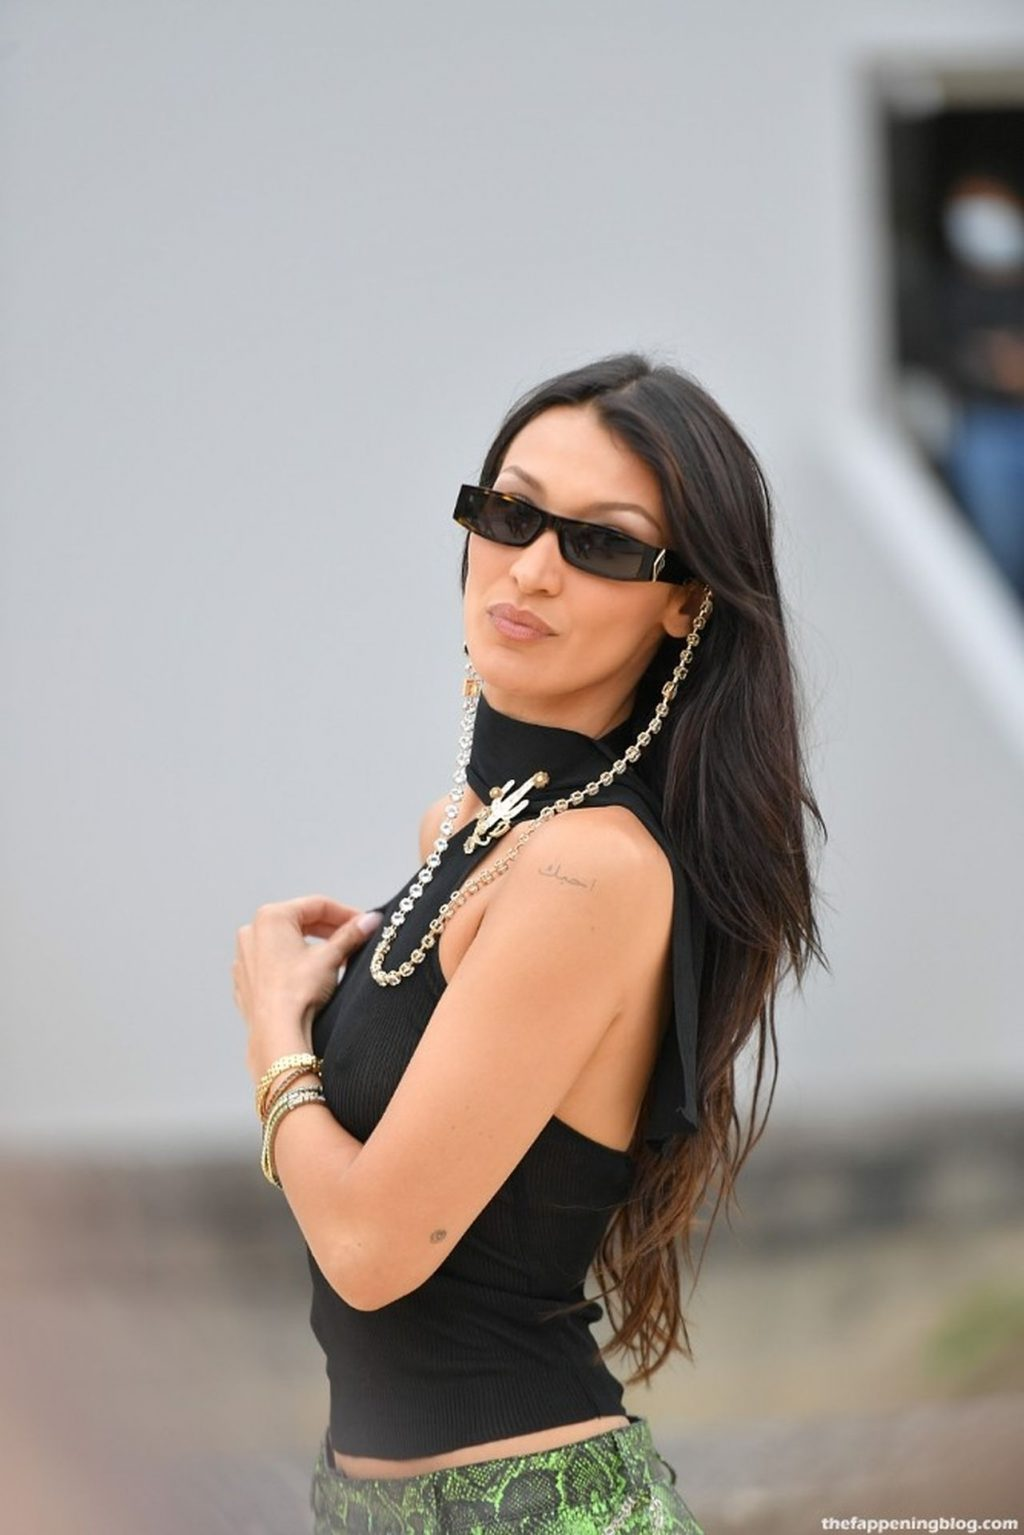 Bella Hadid Shows Off Her Tits in Paris (100 New Photos)